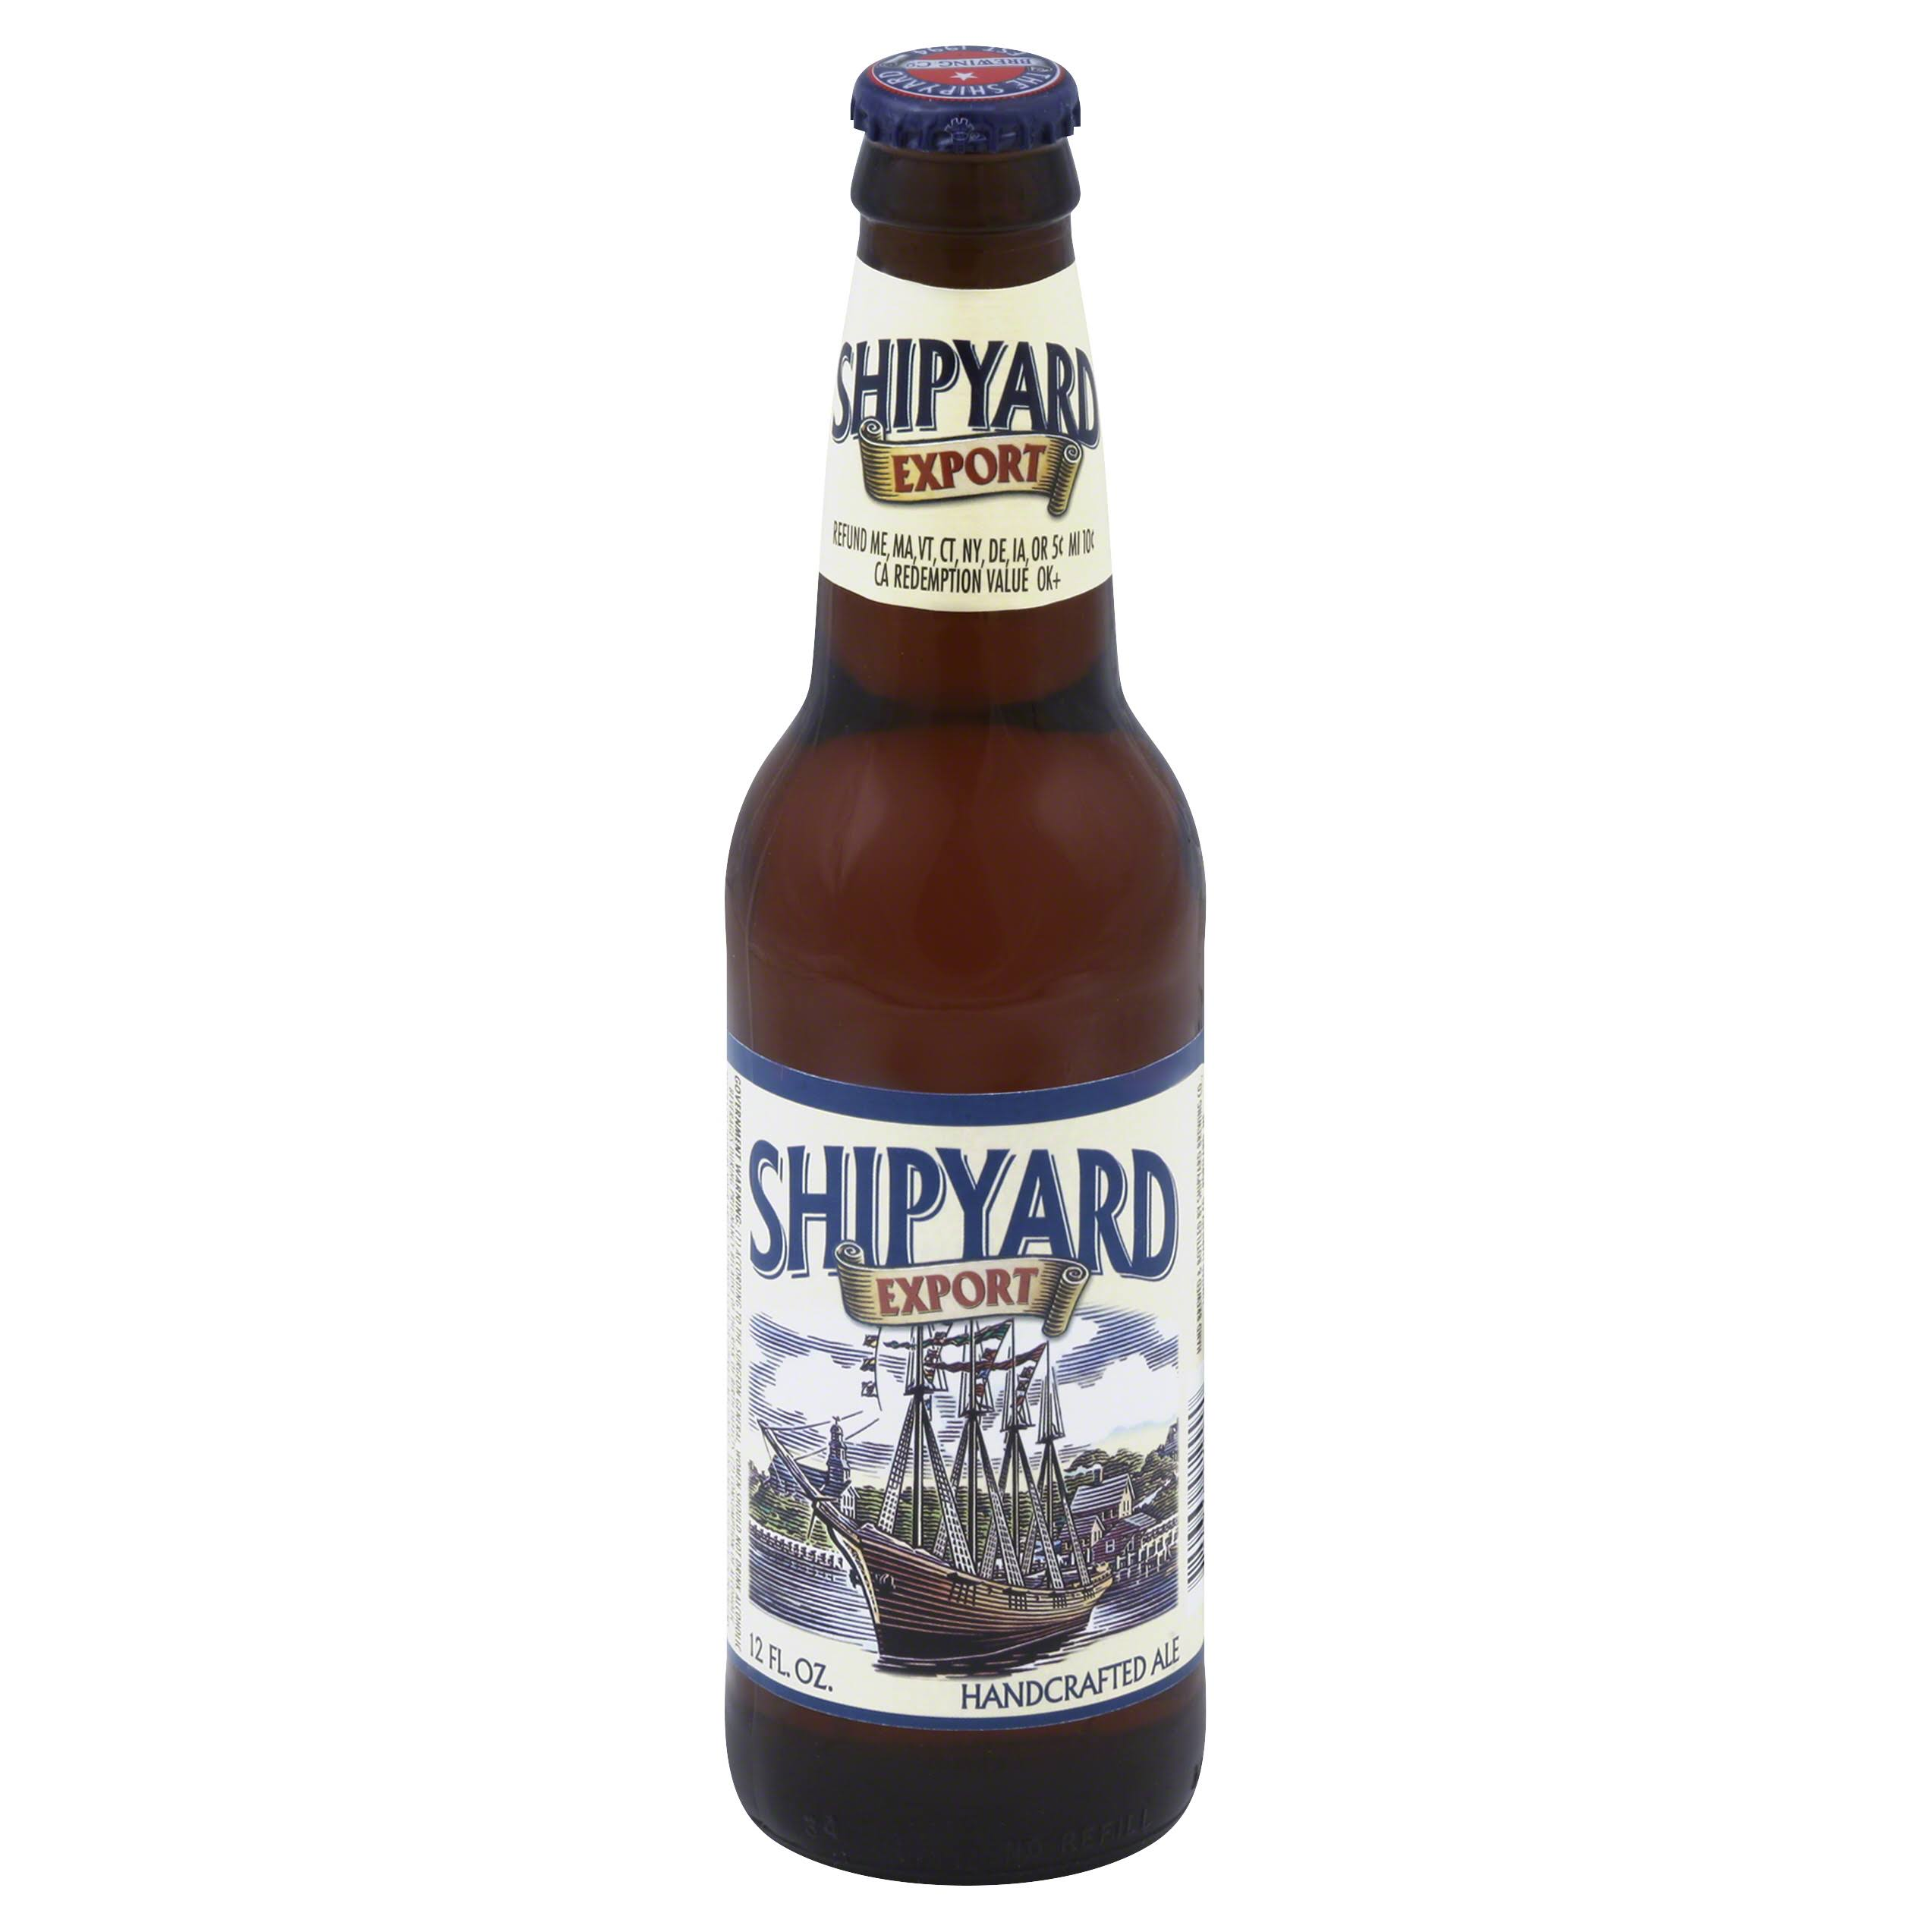 Shipyard Handcrafted Ale Beer - 12oz